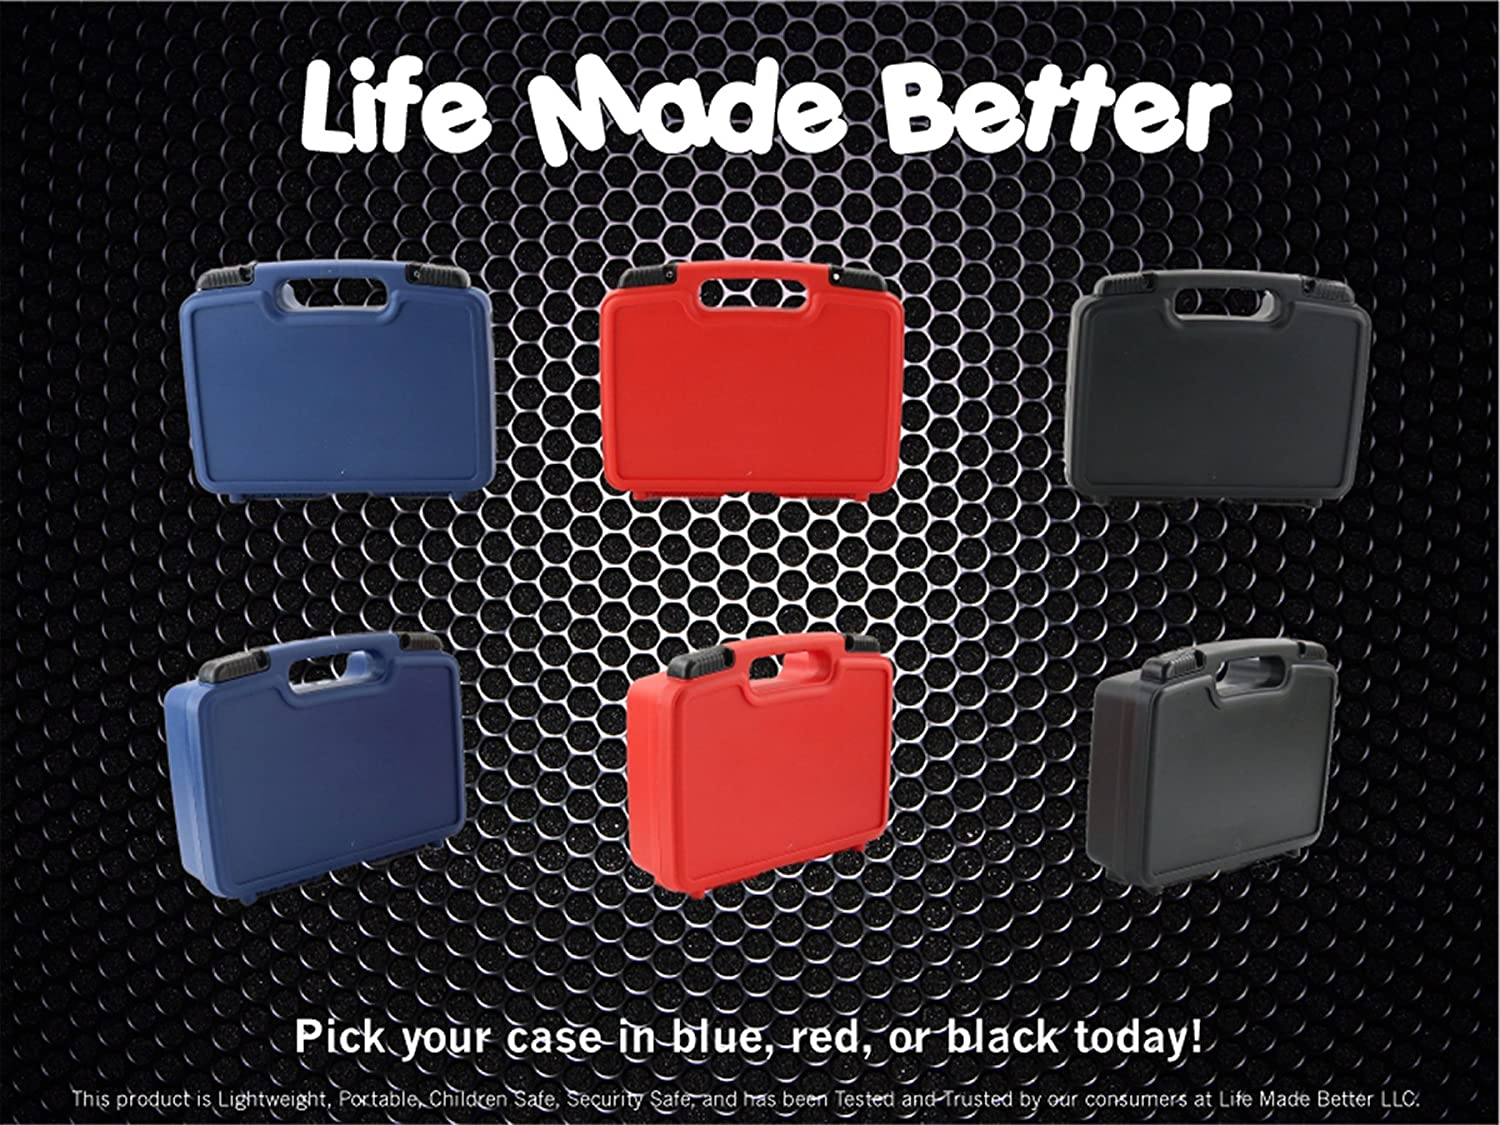 Life Made Better Storage Organizer - Compatible with Tascam DR-05, DR-40, DR-22L, DR-100MKll, DR-44WL Portable Recorder And Accessories- Durable Carrying Case - Red LMB356